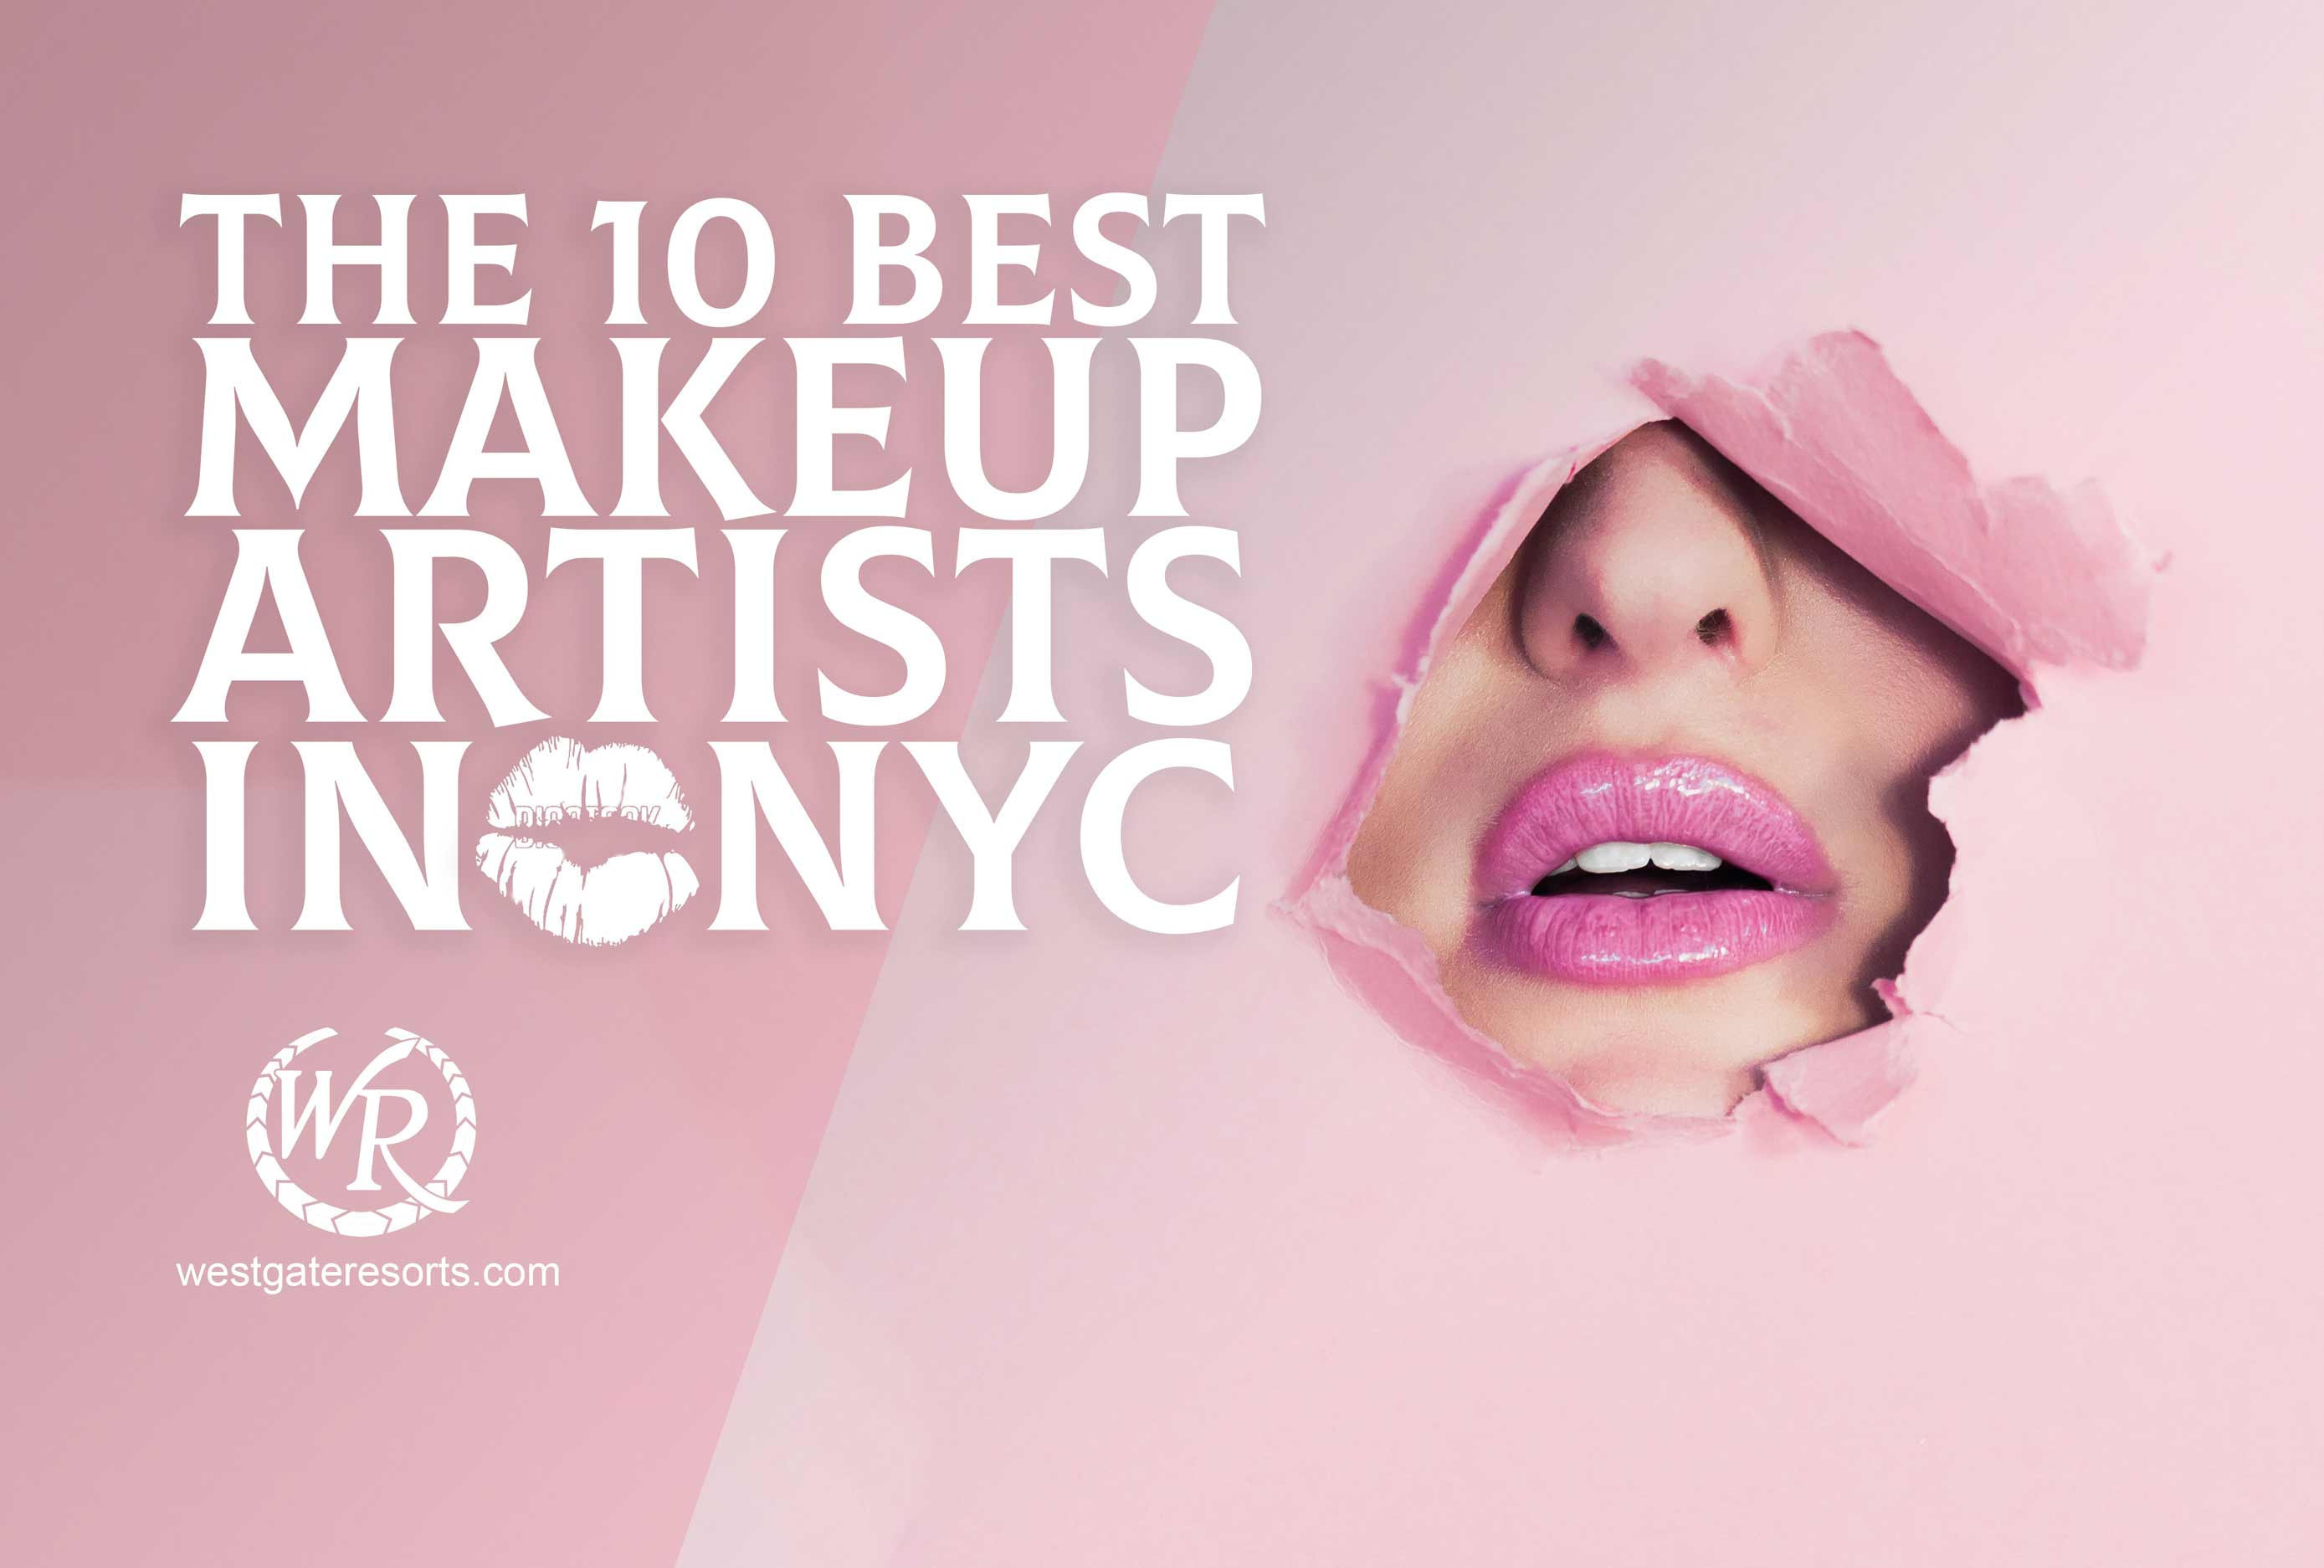 The 10 Best Makeup Artists in NYC